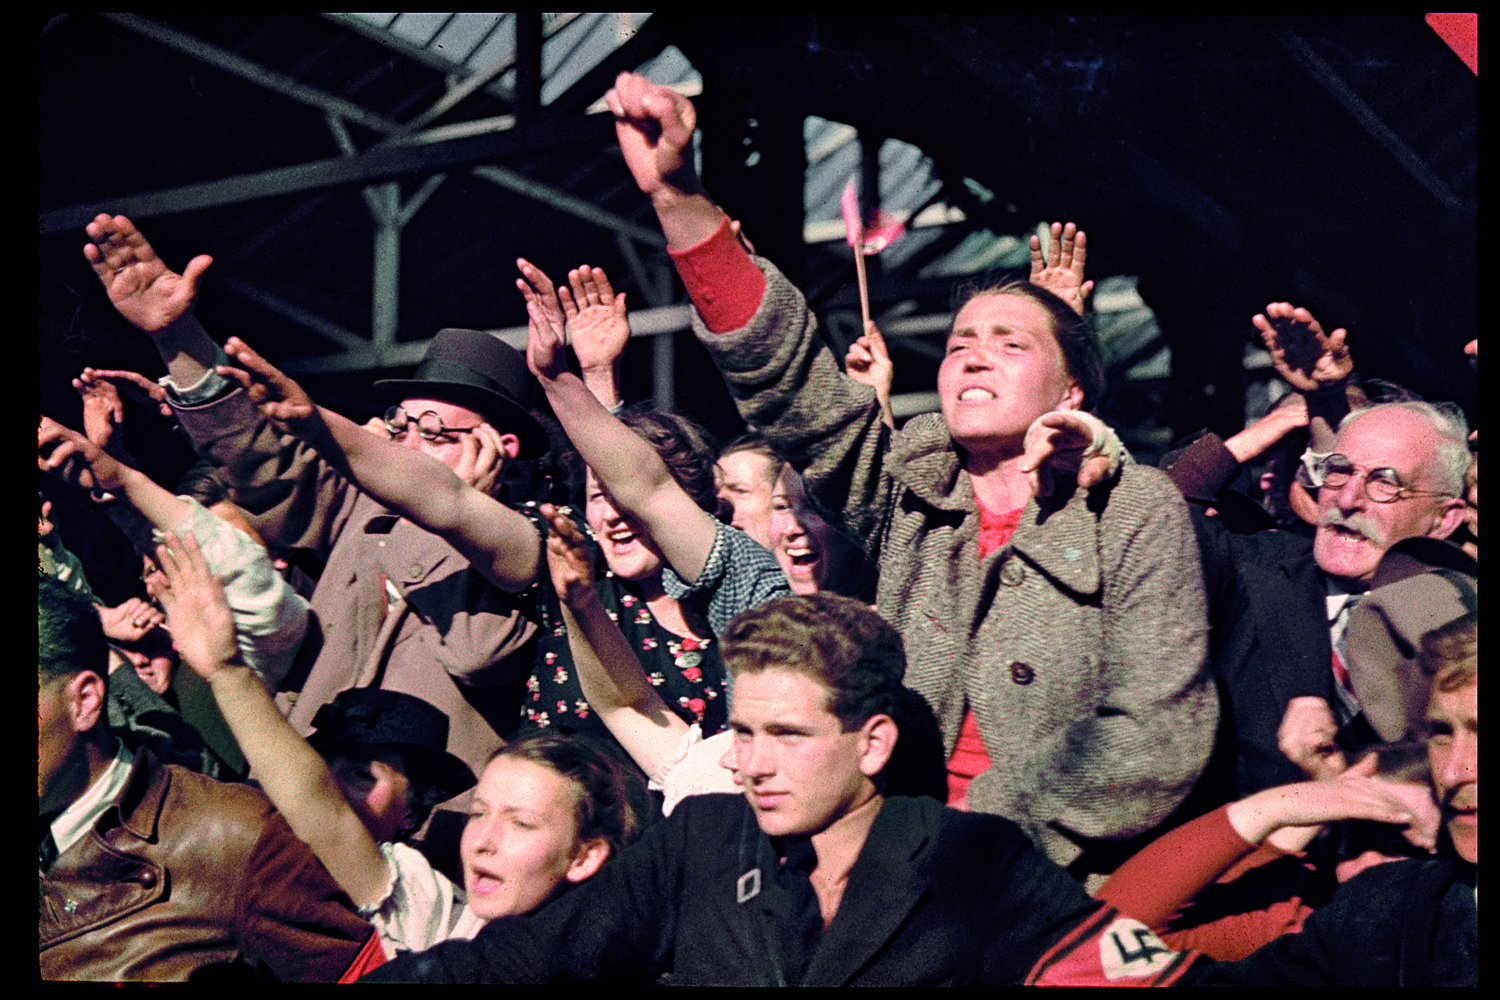 Austrians cheer Adolf Hitler during his 1938 campaign (before the Anschluss)  to unite Austria and Germany.